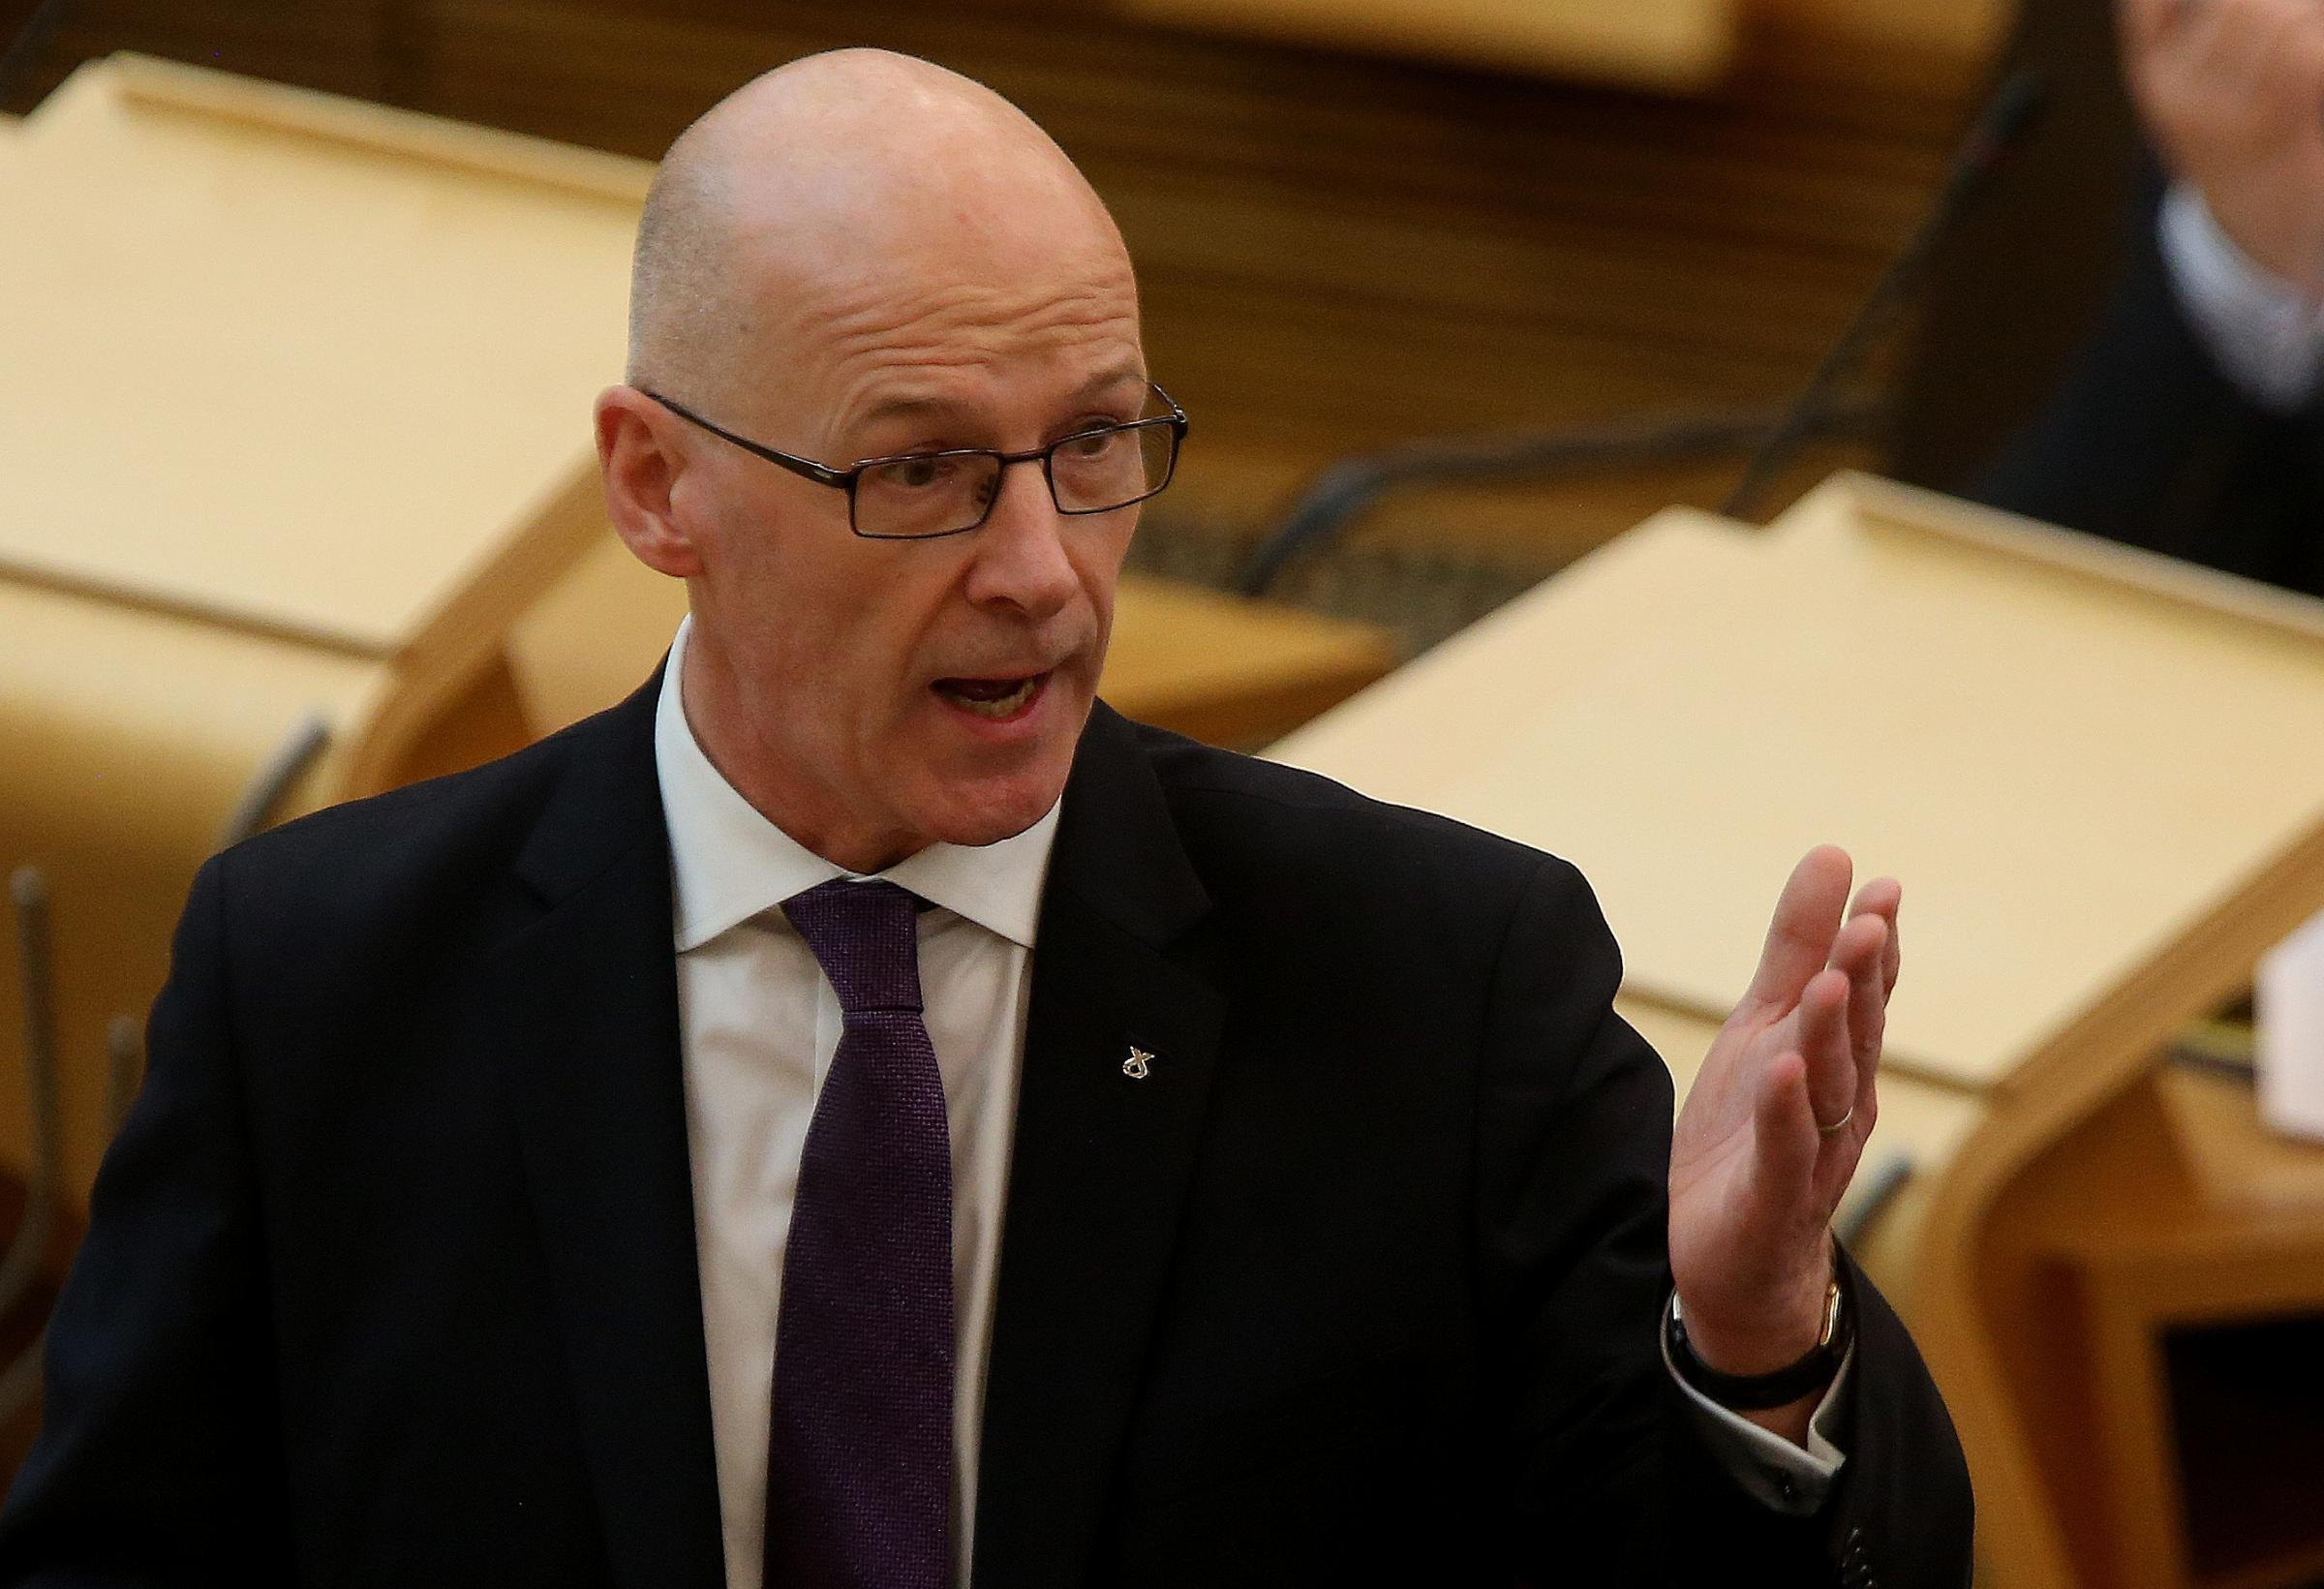 John Swinney revealed he was not considering grants from central government for music tuition